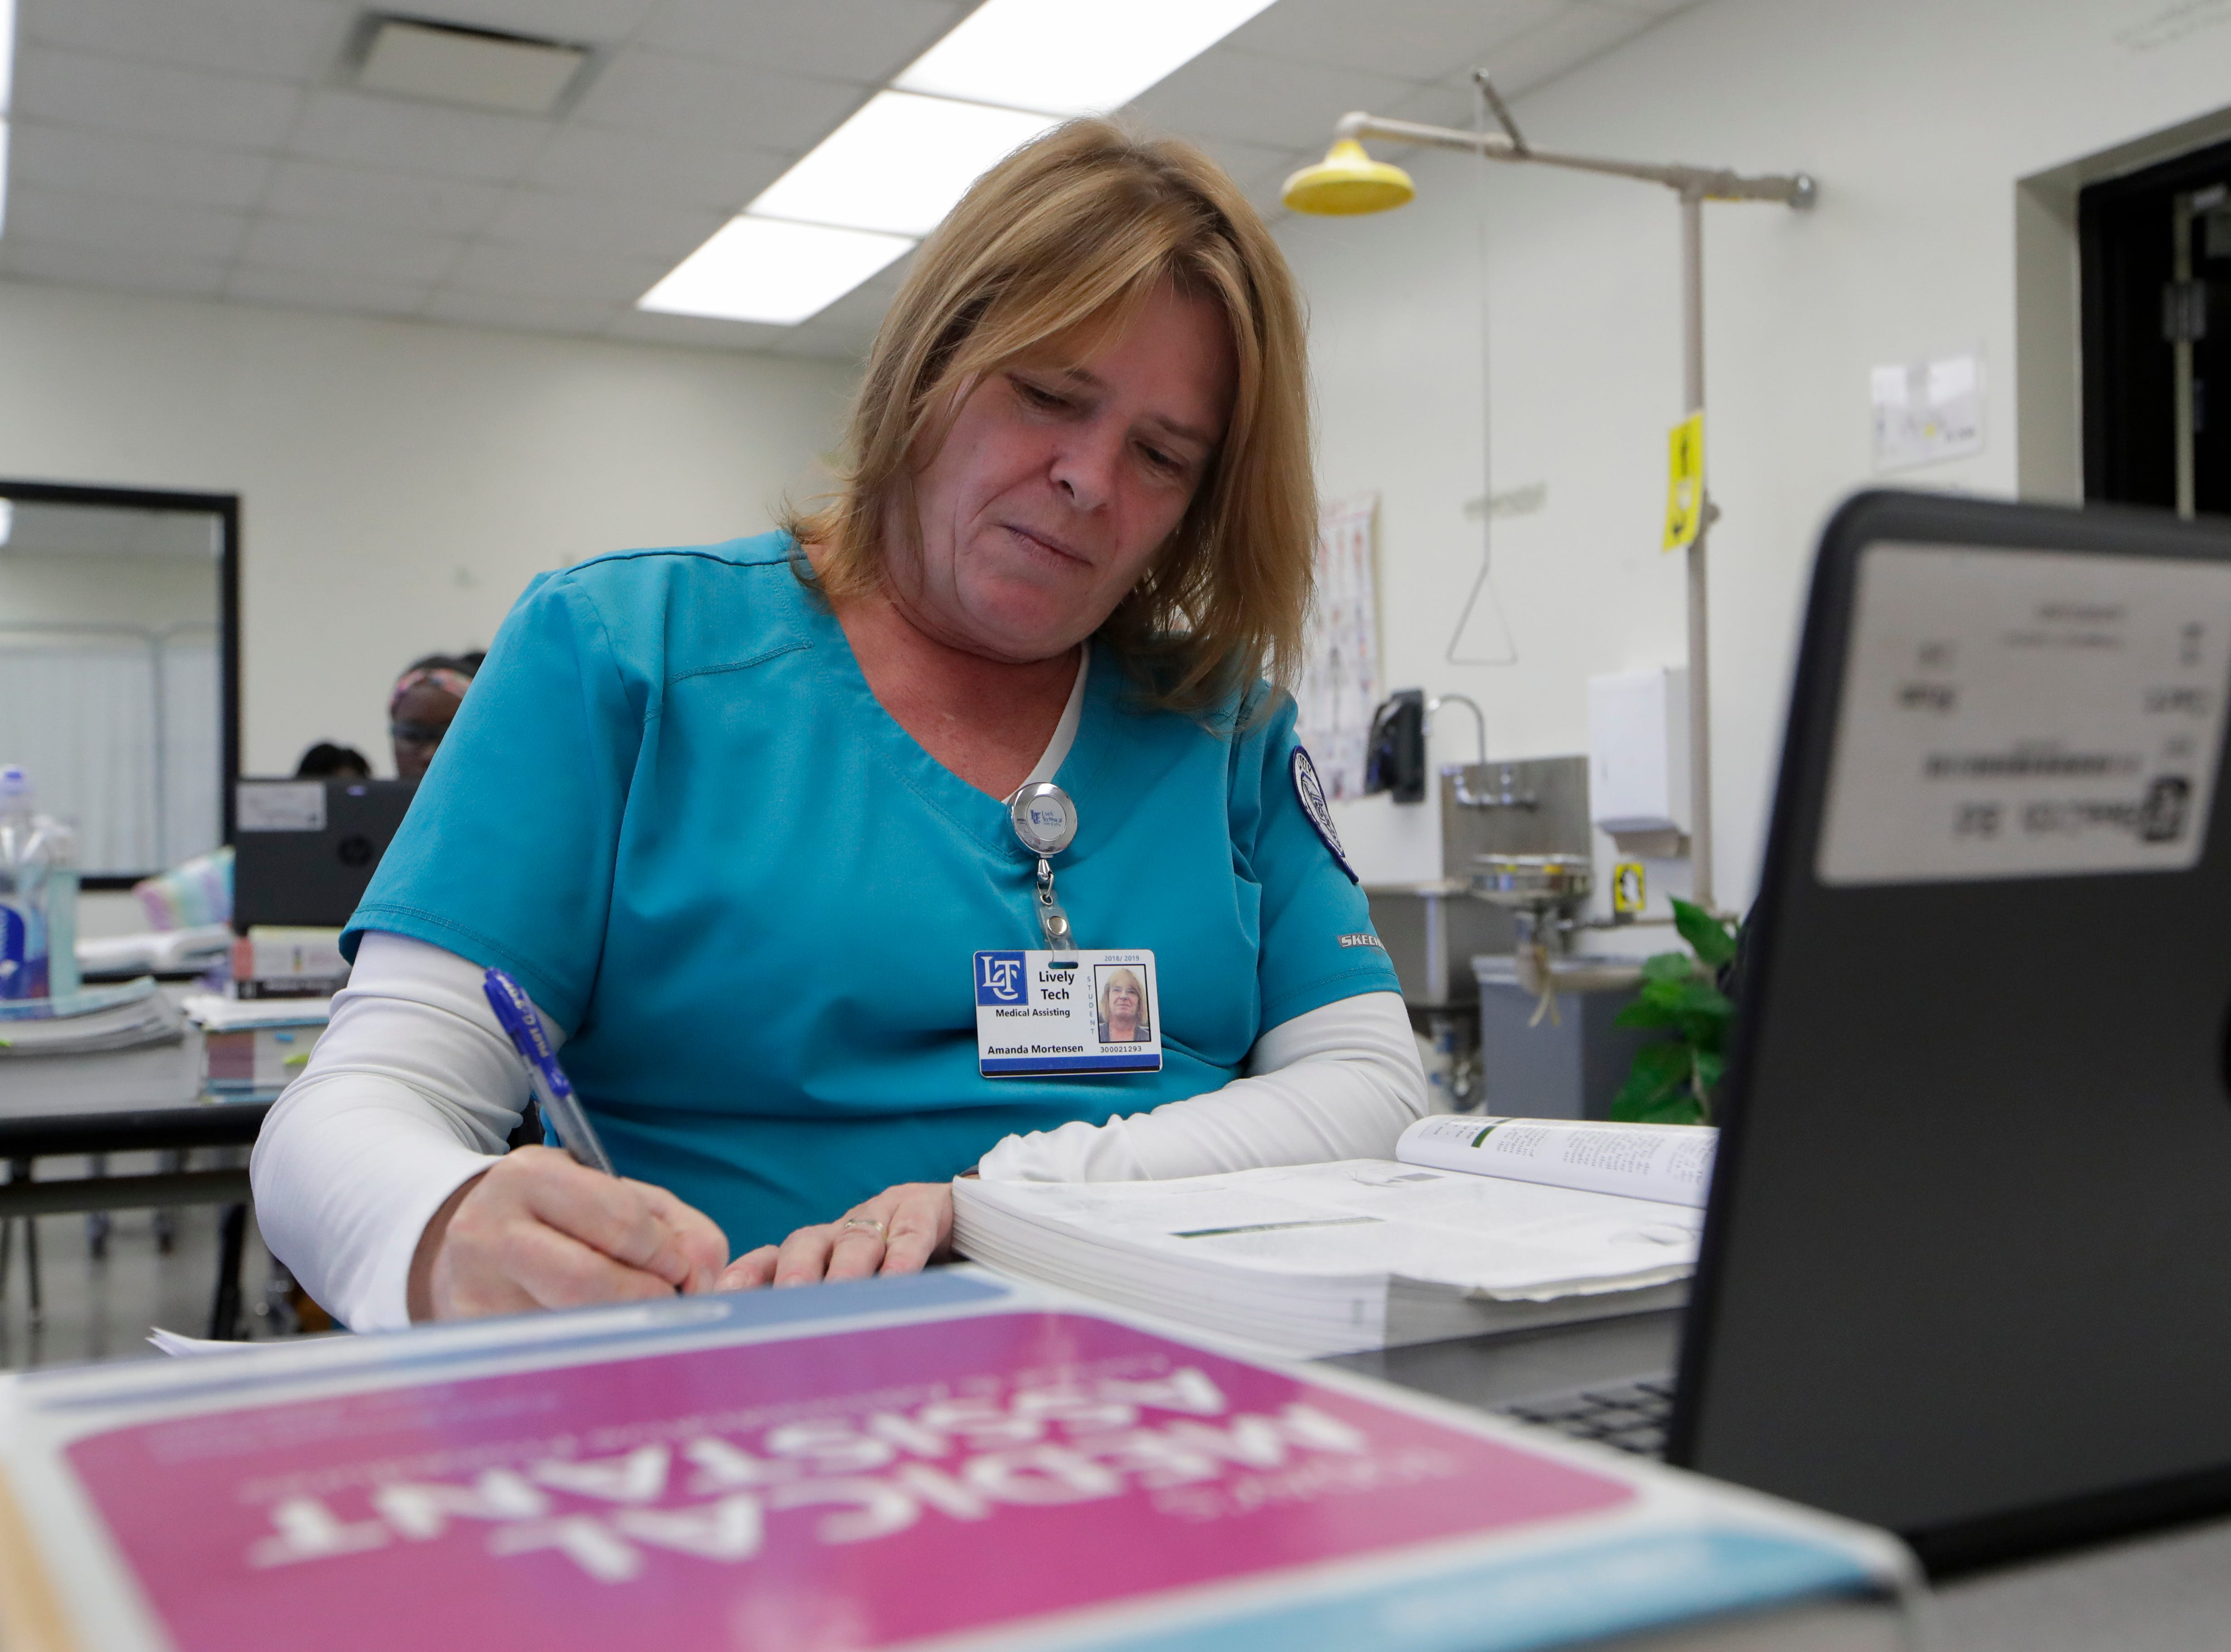 Medical assistant student Amanda Mortensen takes notes from a textbook Wednesday, Jan. 9, 2019 at Lively Technical Center which has been approved by the Leon County School Board to change it's name to Lively Technical College.